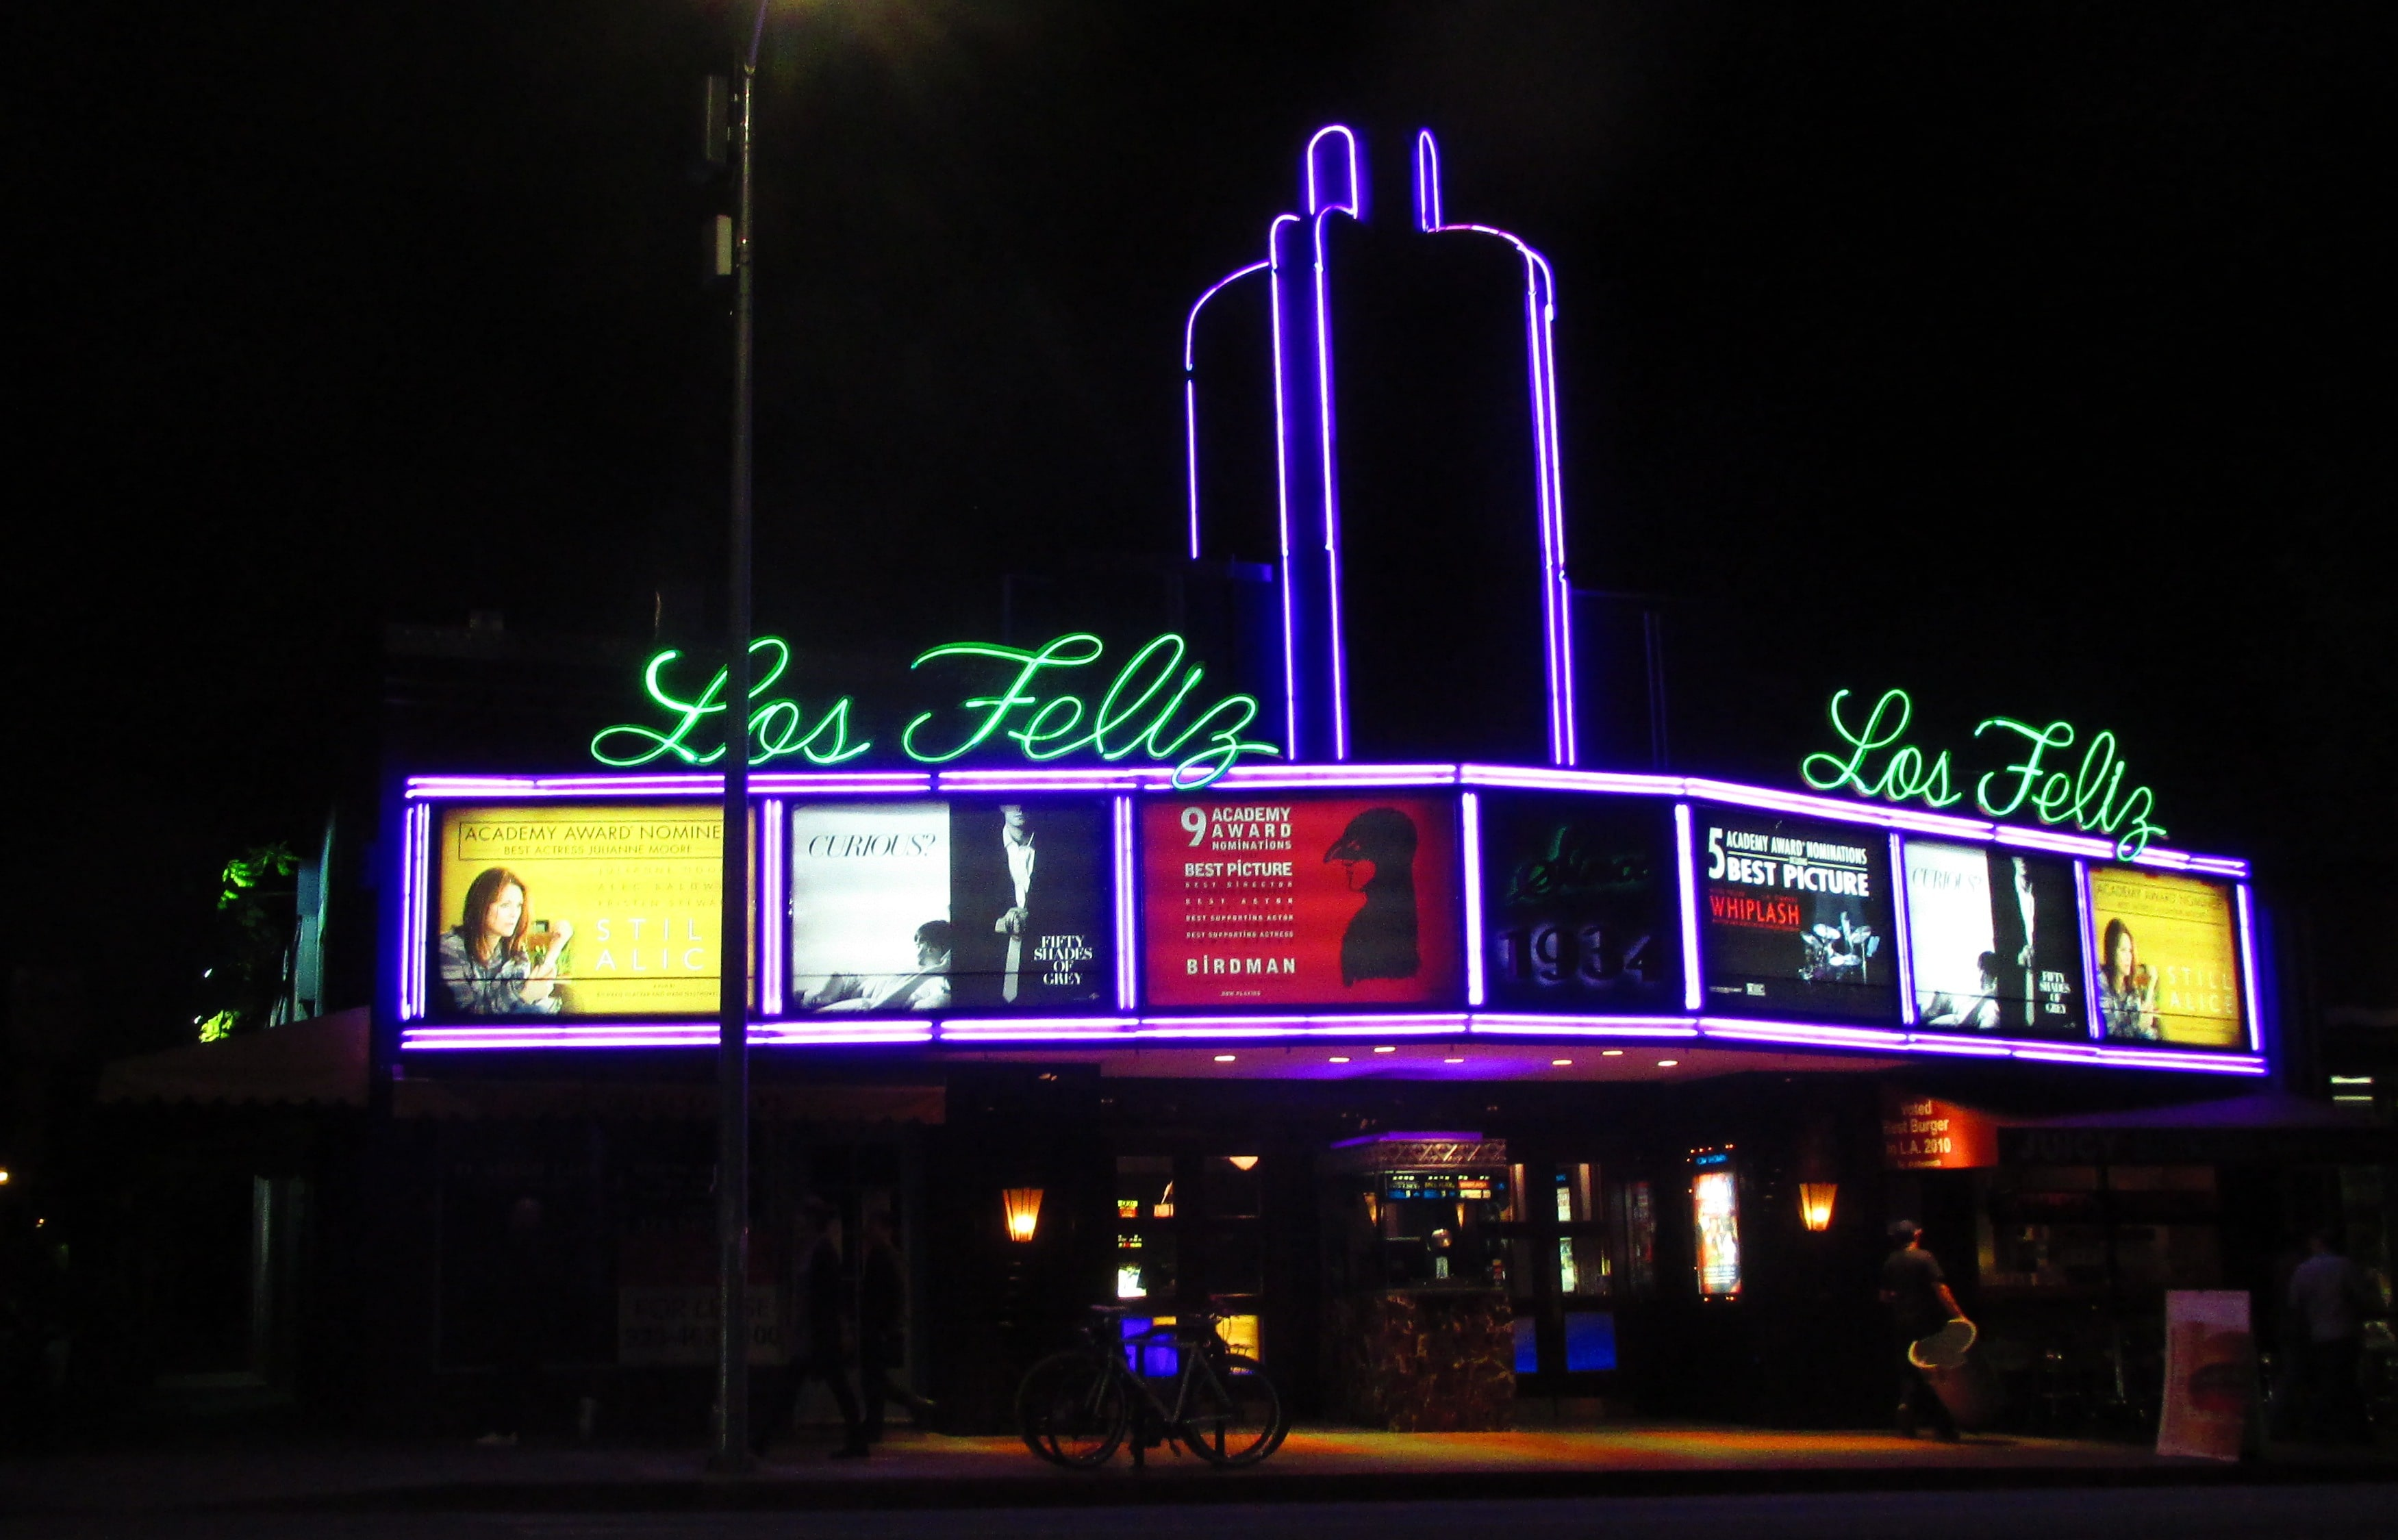 Where to stay in LA? Los Feliz's laid back vibe is a gem in glitzy LA